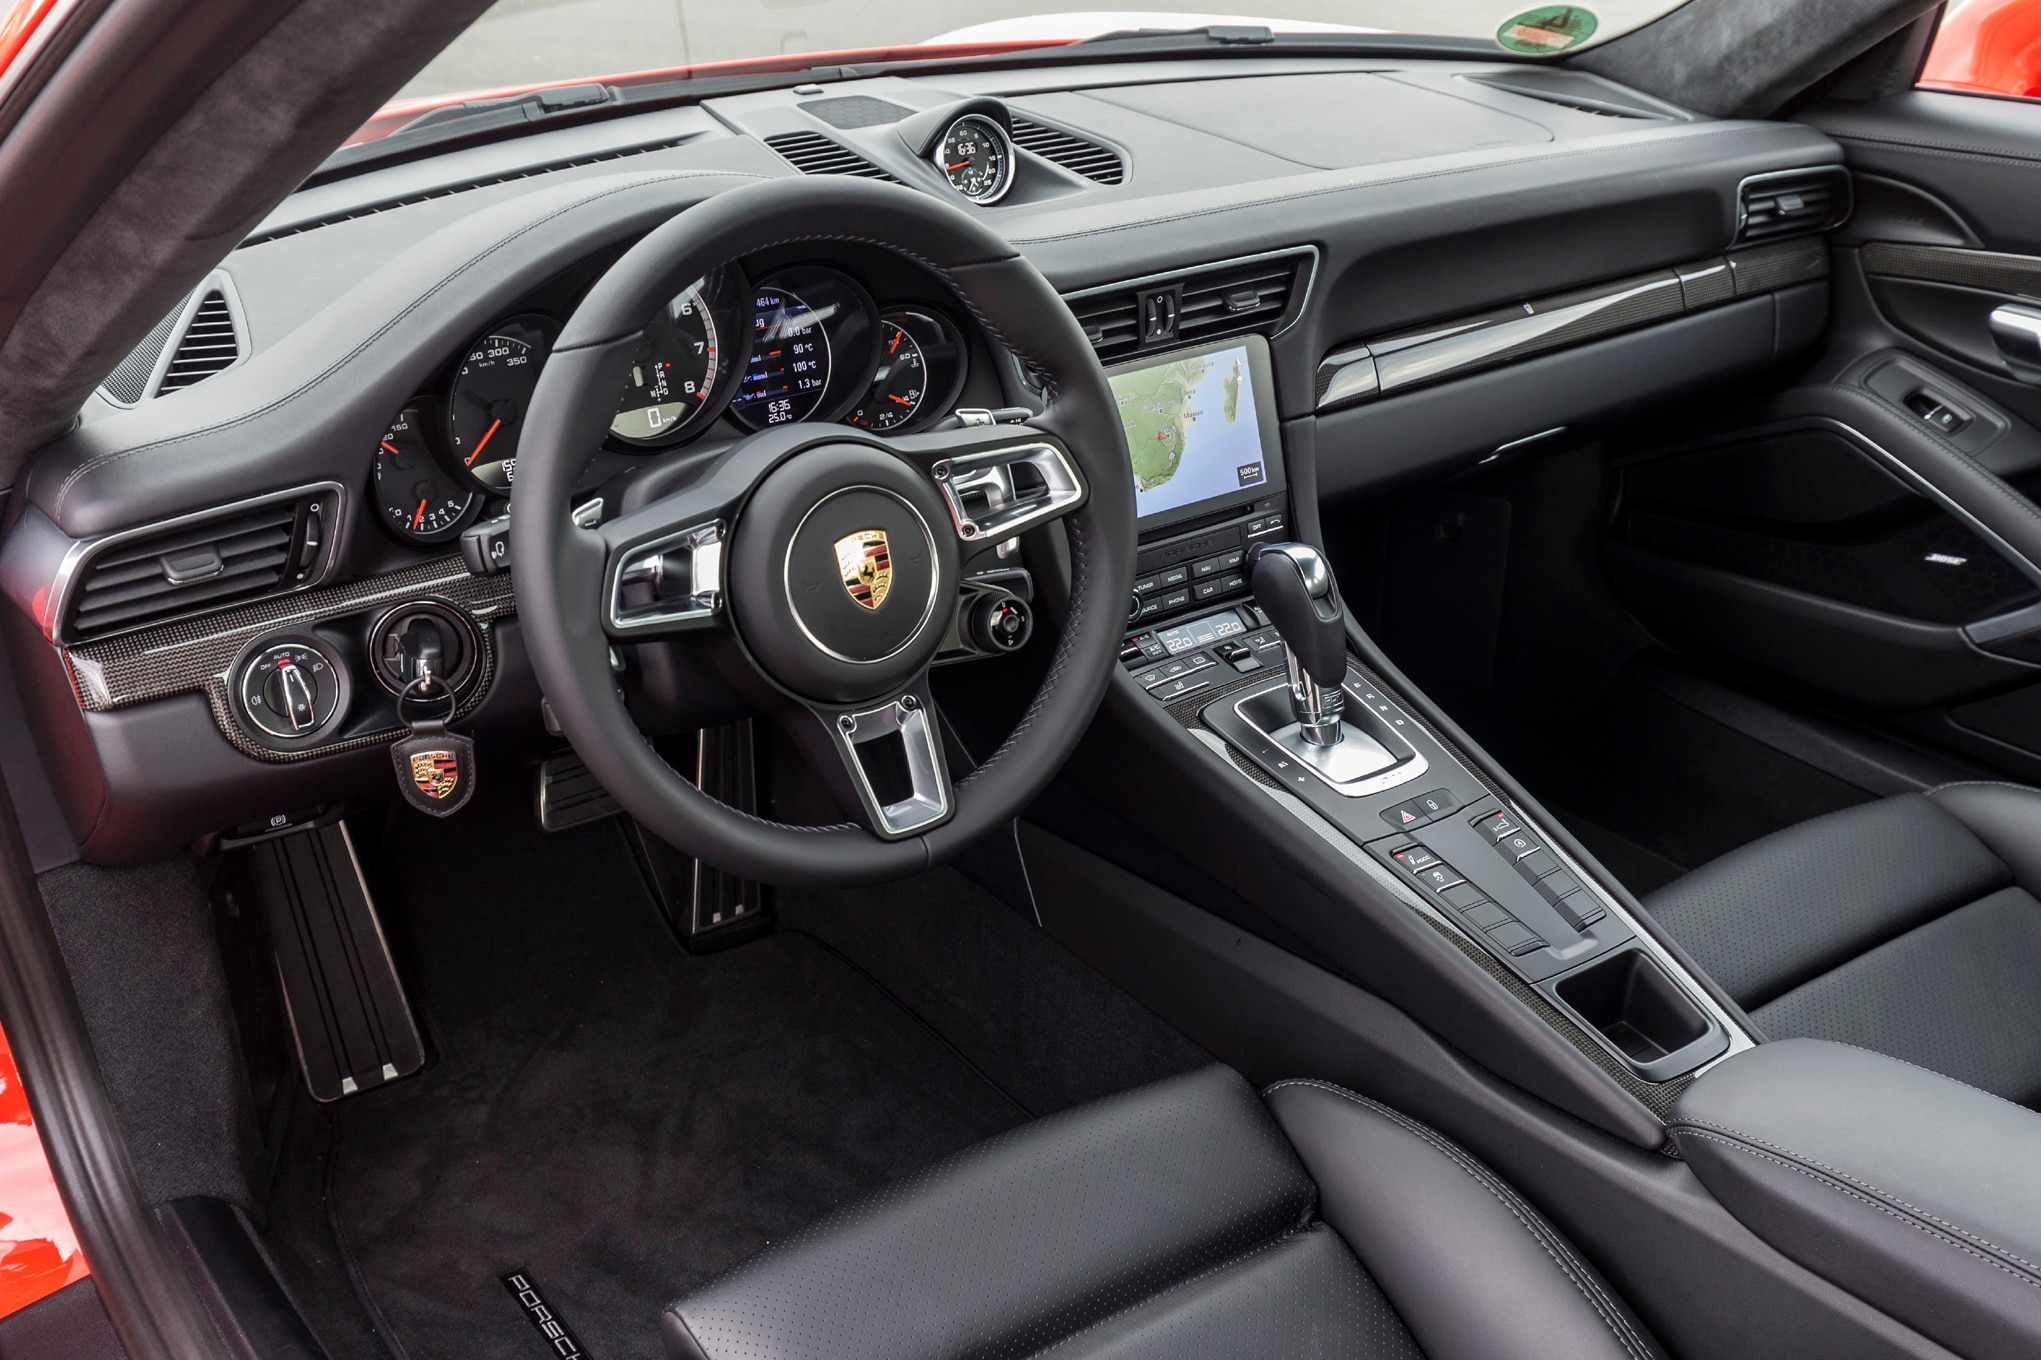 2017 porsche 911 turbo and 911 turbo s review. Black Bedroom Furniture Sets. Home Design Ideas